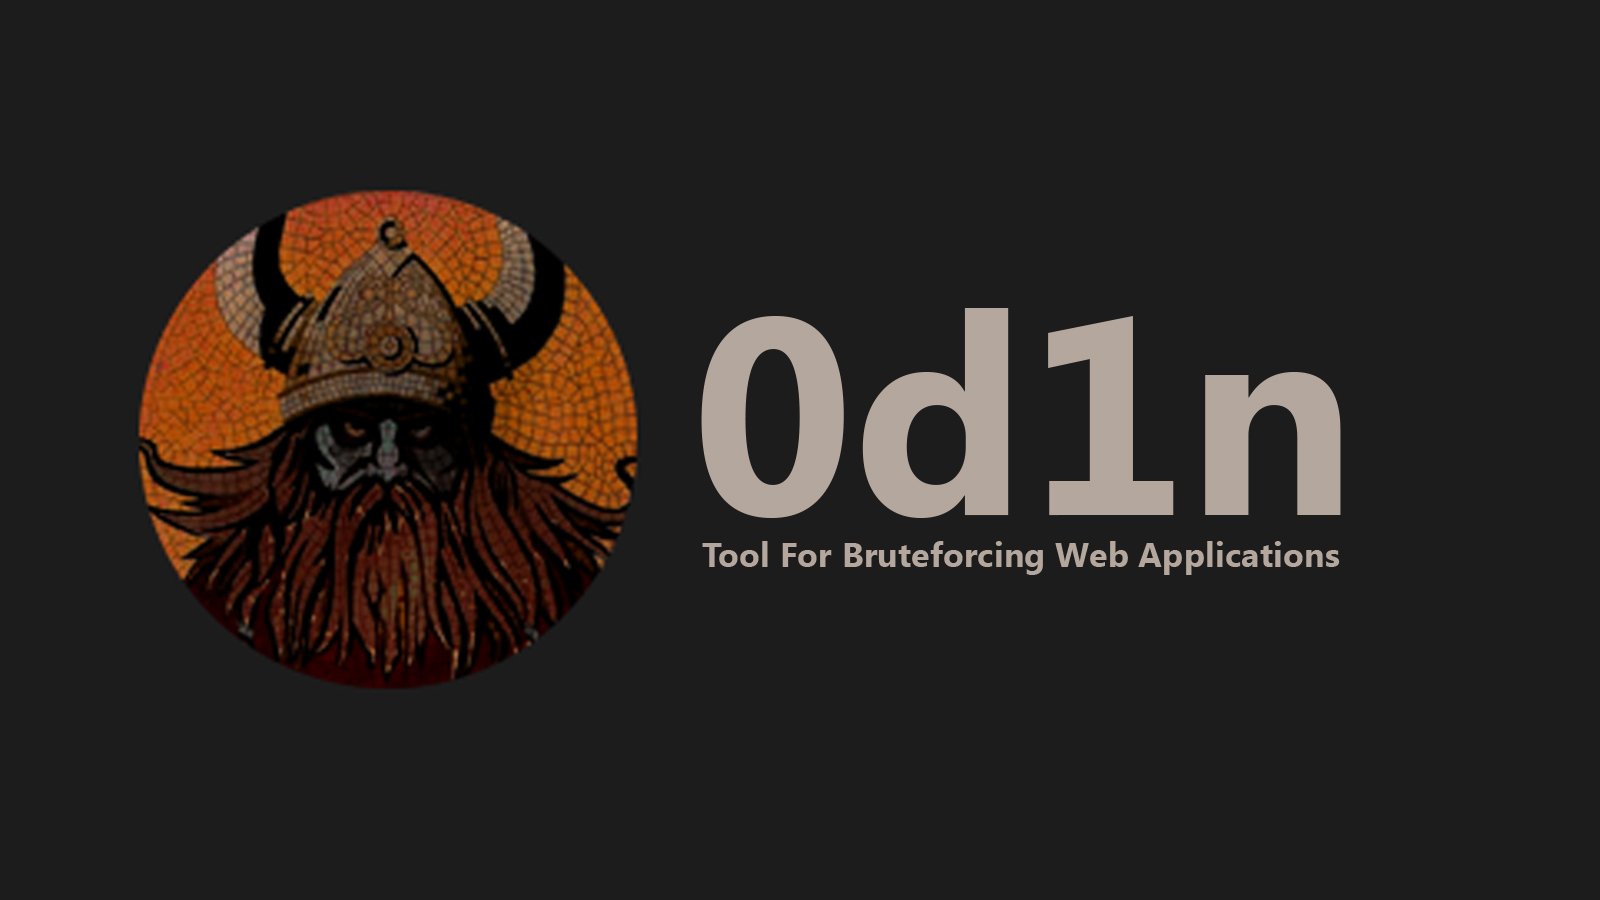 0d1n - Tool For Bruteforcing Web Applications